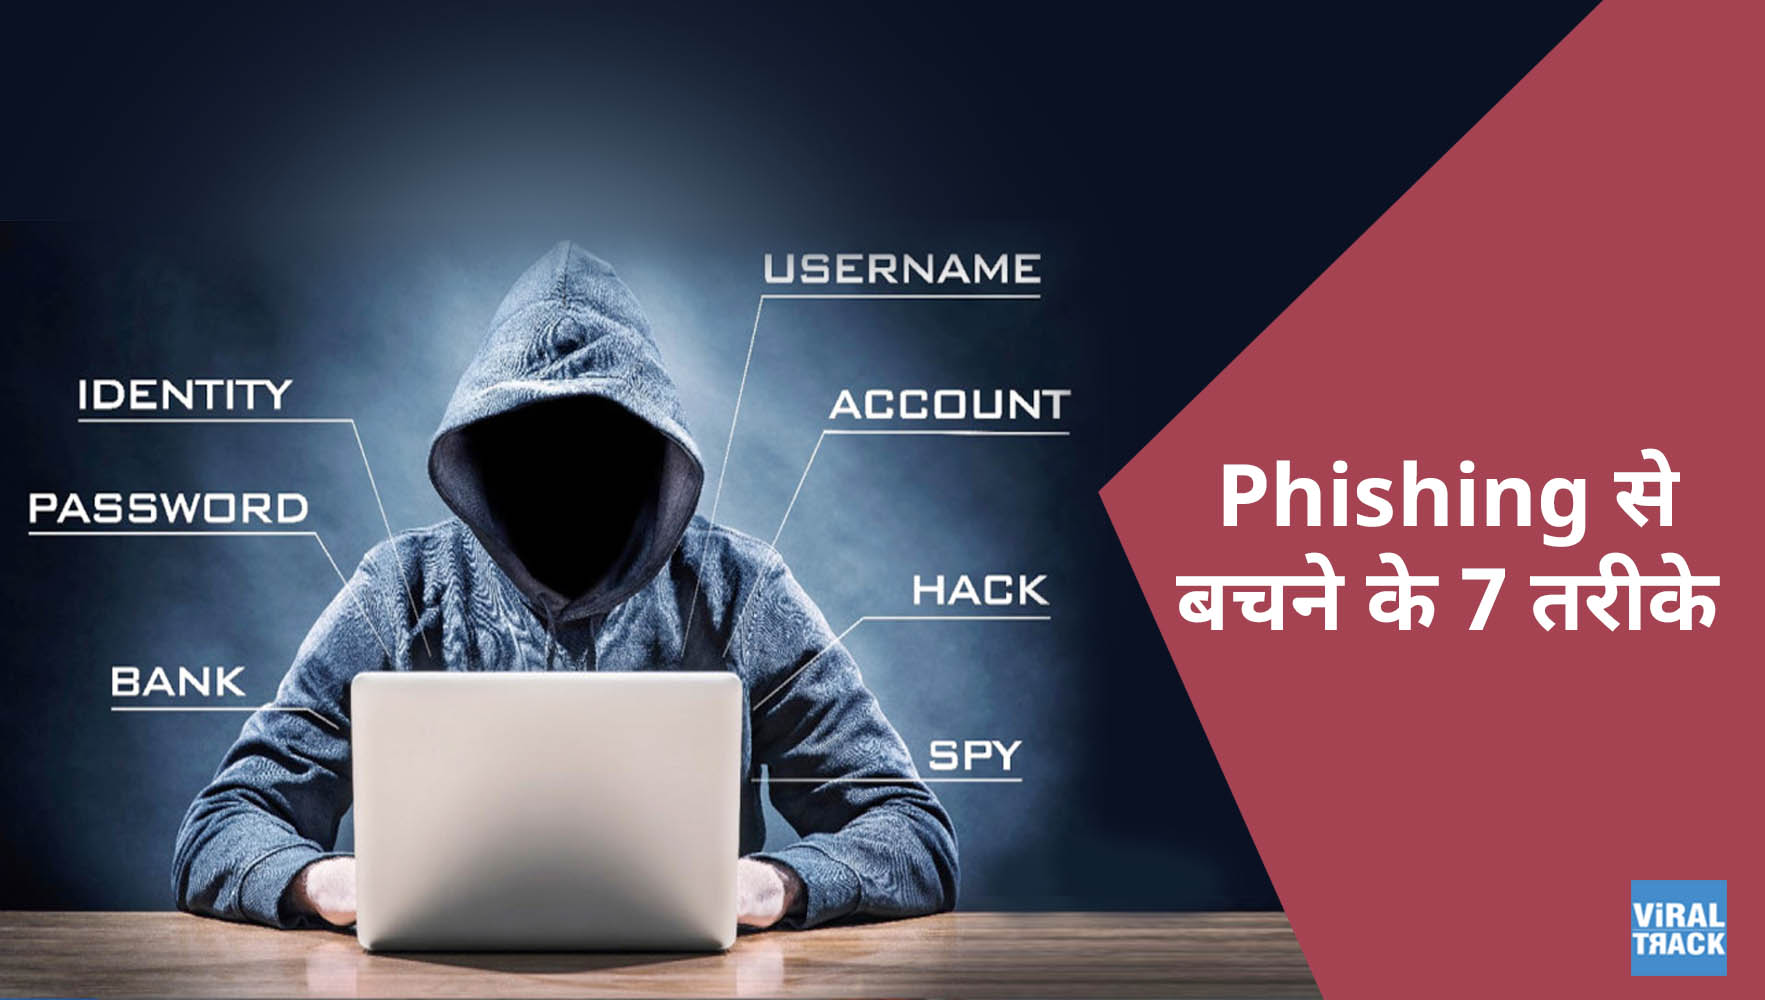 7 steps can save you from Phishing scheme